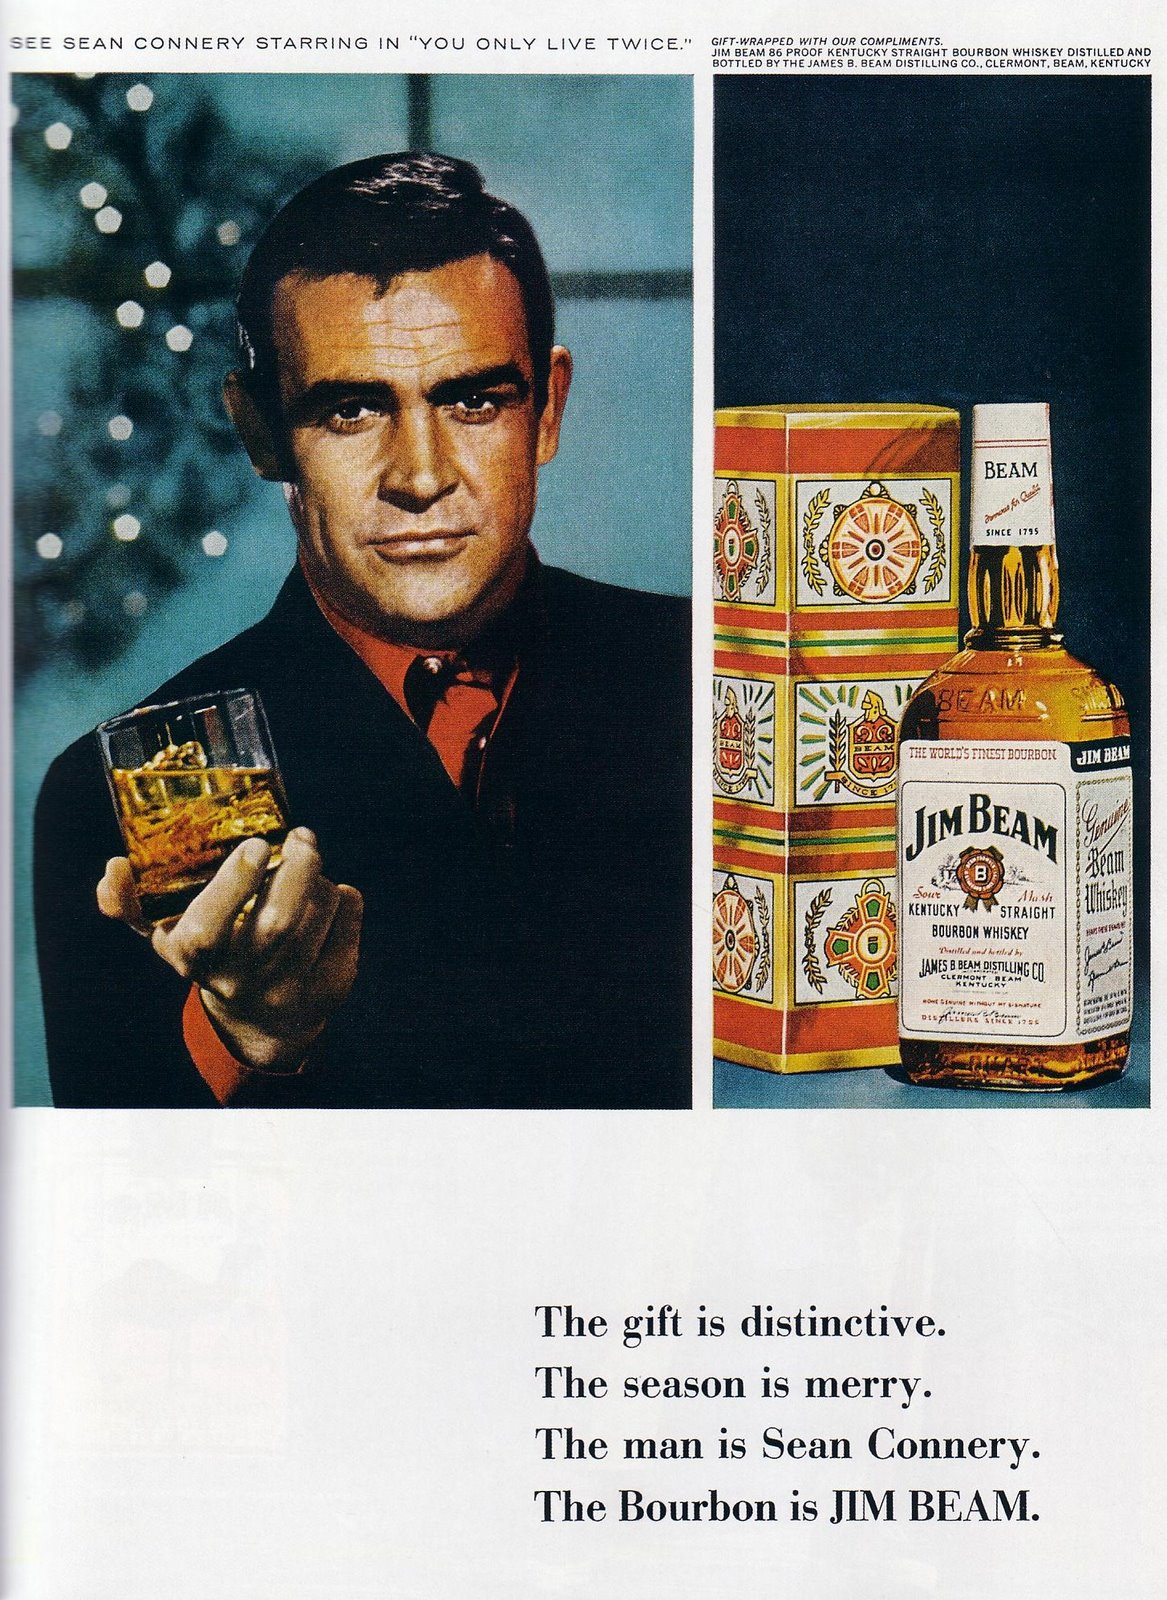 During his James Bond days, Sean Connery appeared in several Jim Beam ads in the 1960s.